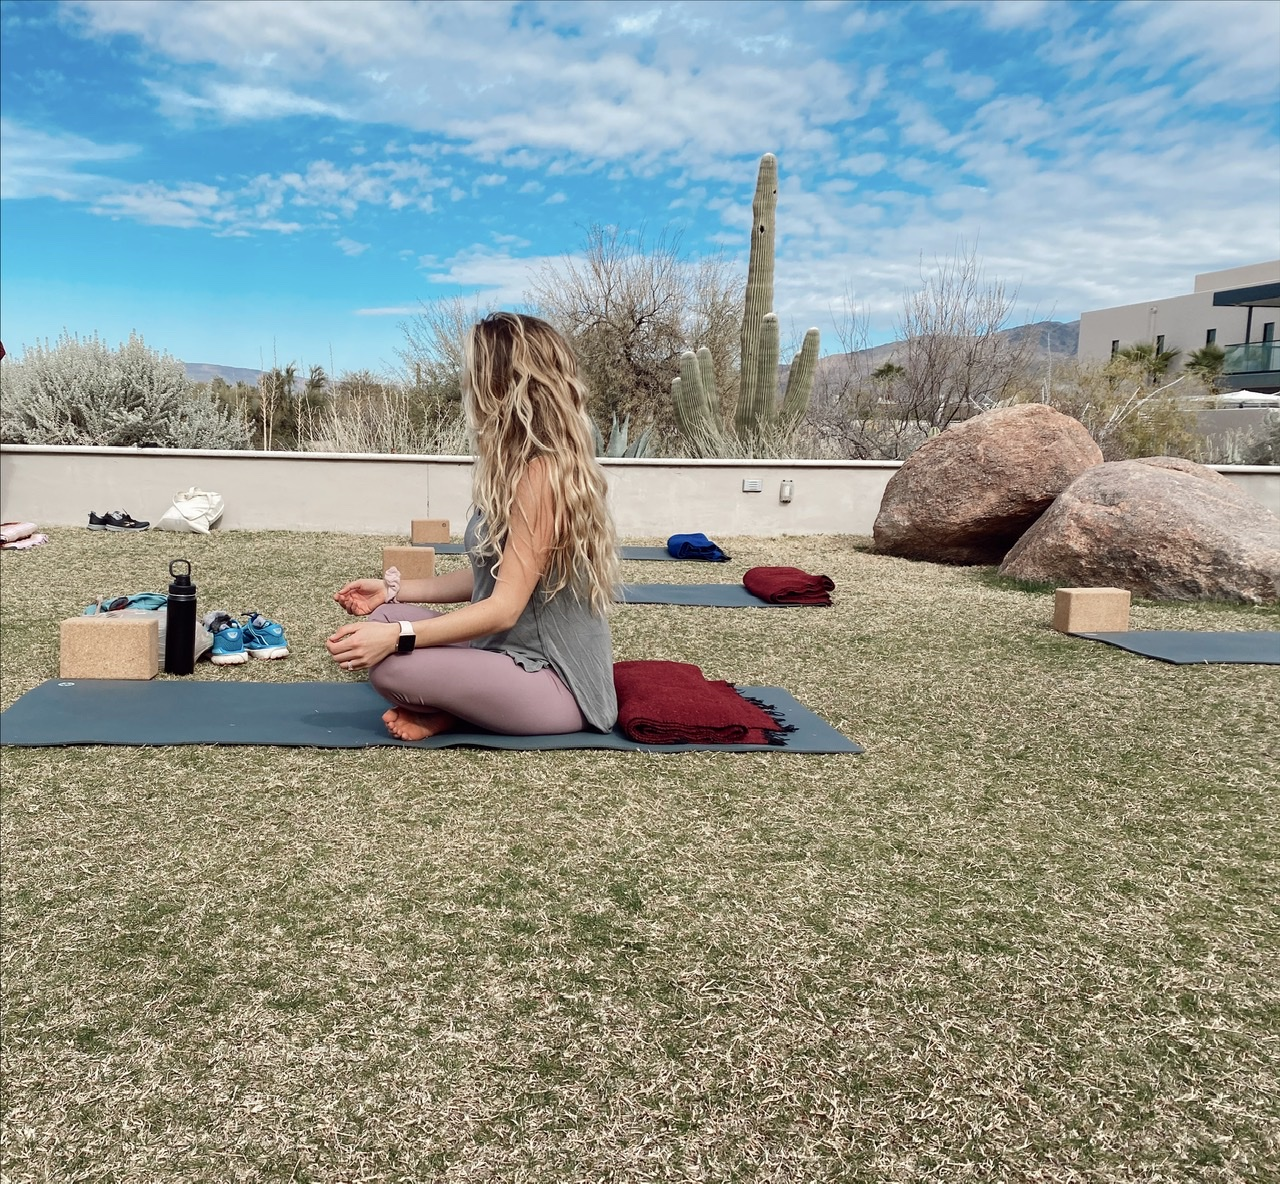 Can you say ZEN? Enjoying a mid-day yin yoga session outside on the yoga lawn at Civana Wellness Resort complete with calming meditative music, blankets and blocks.